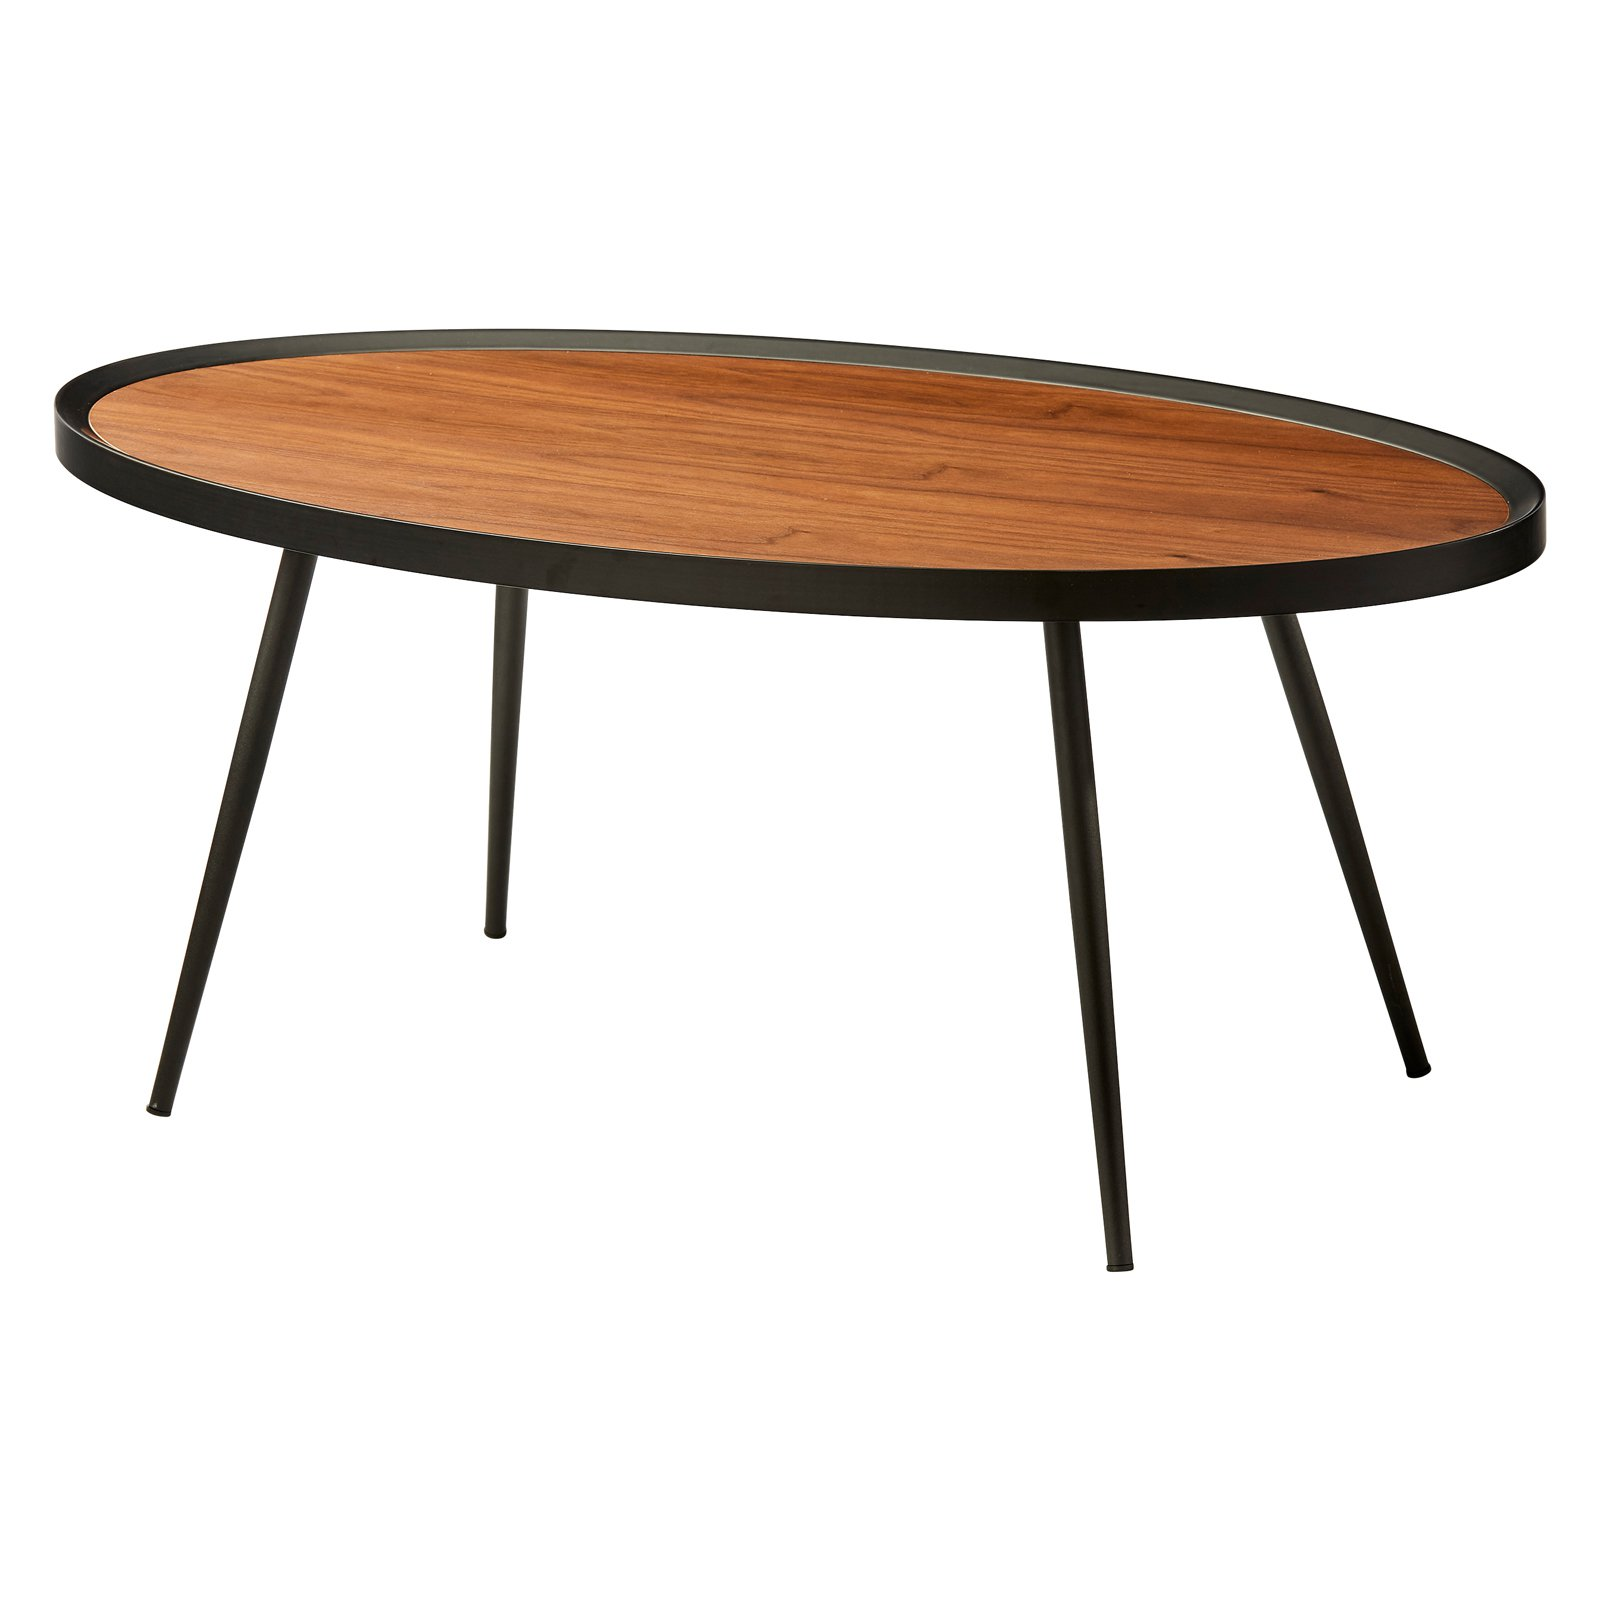 Adesso Baldwin Coffee Table by Adesso